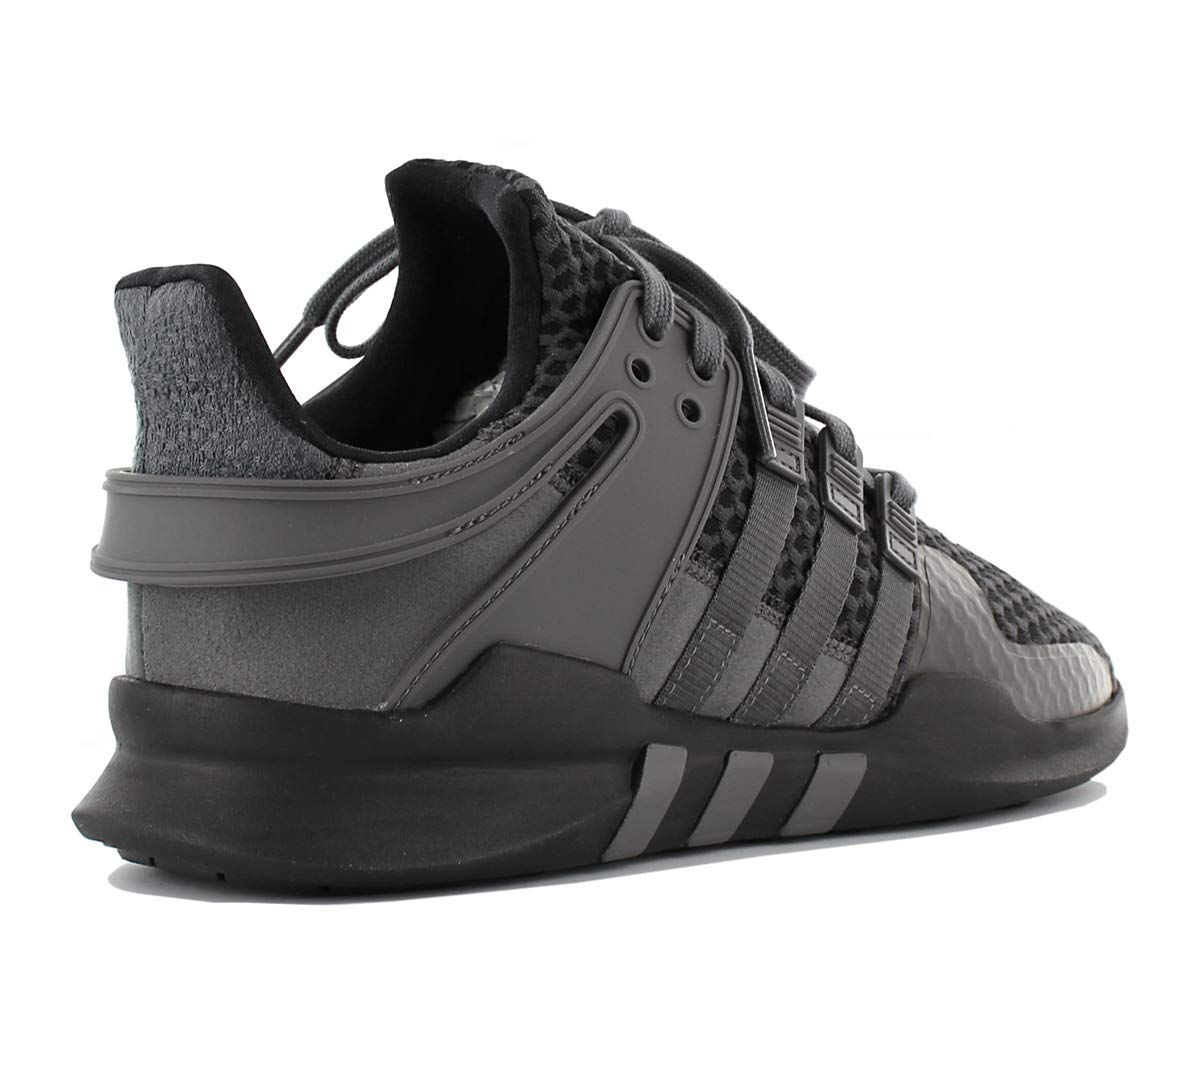 reputable site 43723 45dbf adidas Originals Mens Trainers Equipment Support Adv Sneakers Fashioin Shoes  GreyBlack BB6226 (8.5 UK) Amazon.co.uk Sports  Outdoors